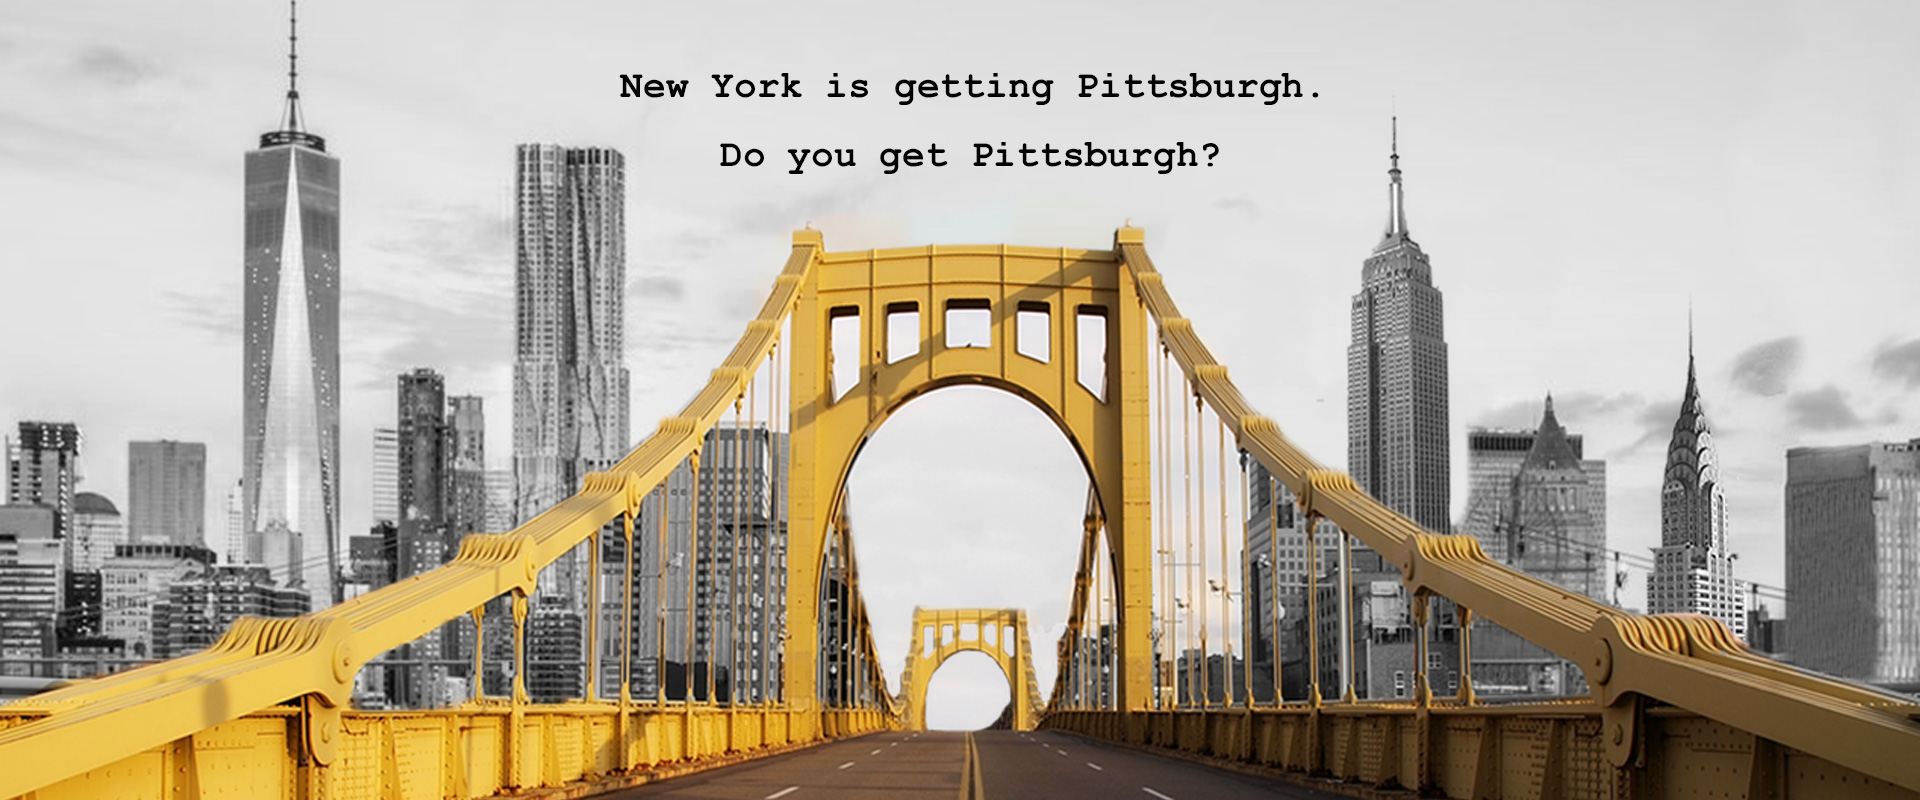 New York is getting Pittsburg. Do you get Pittsburgh?